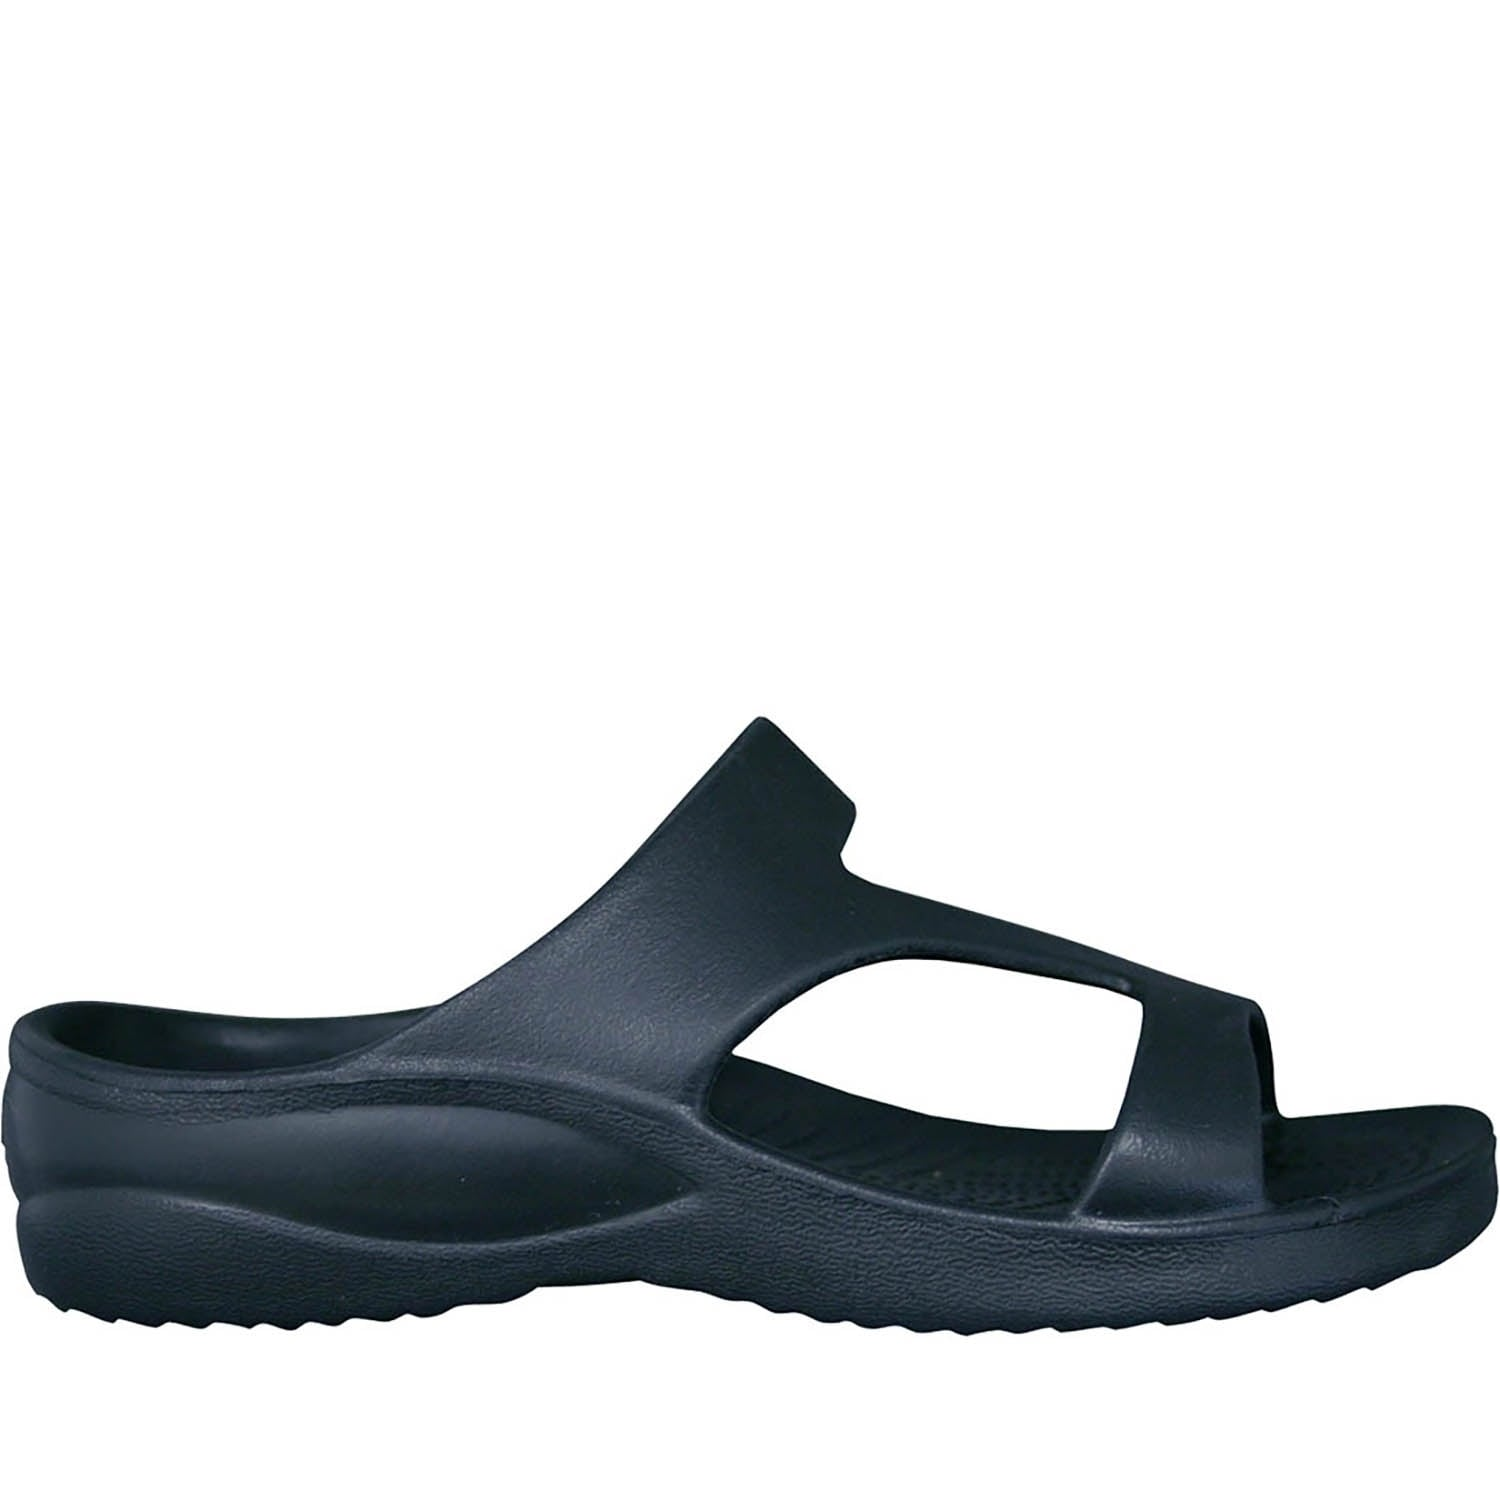 95c87155c31fc Shop Girls  Dawgs Z Sandals - Free Shipping On Orders Over  45 - Overstock  - 20749718